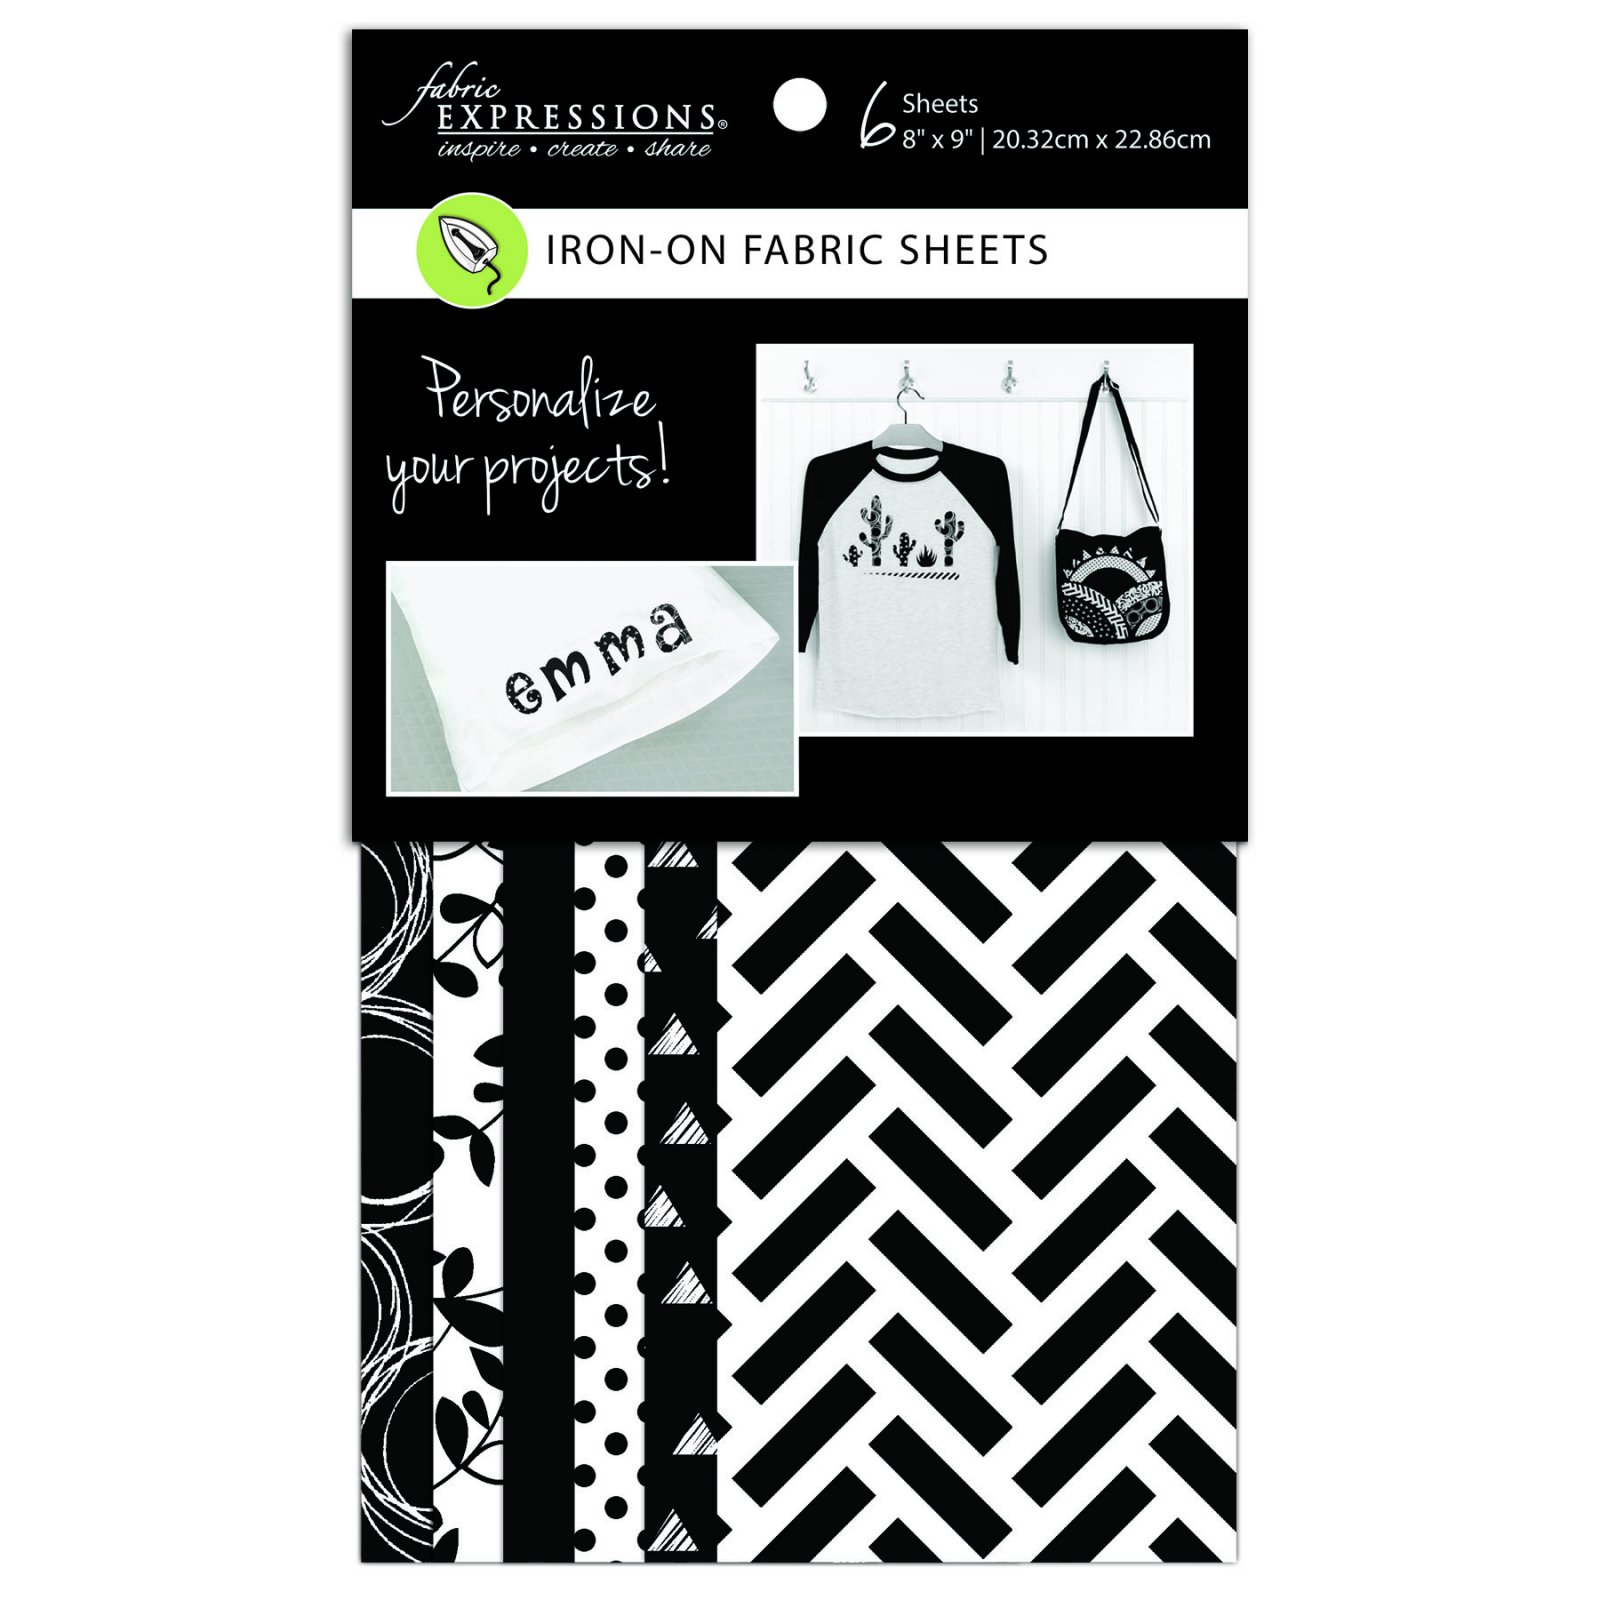 Fabric Expressions<br>6pc Iron-on Fabric Sheets - 8 x 9<br>Black & White<br>FE-FS-GRP3